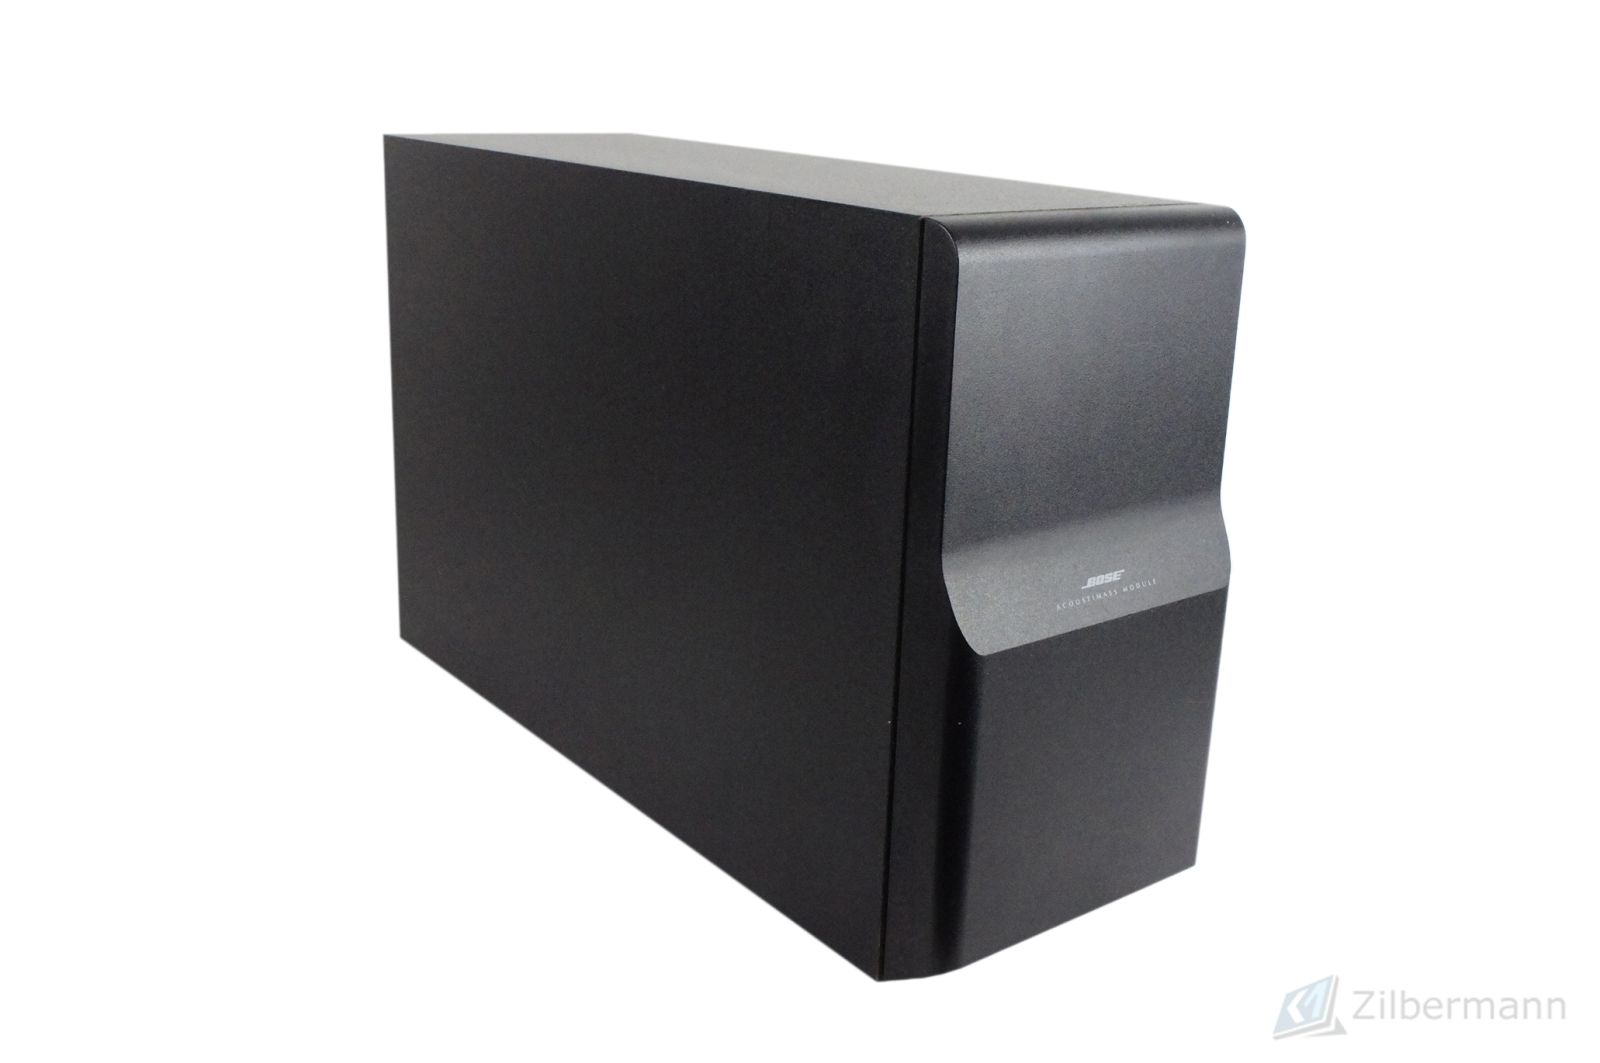 Bose_Acoustimass_10_Series_II_5.1_Subwoofer_04